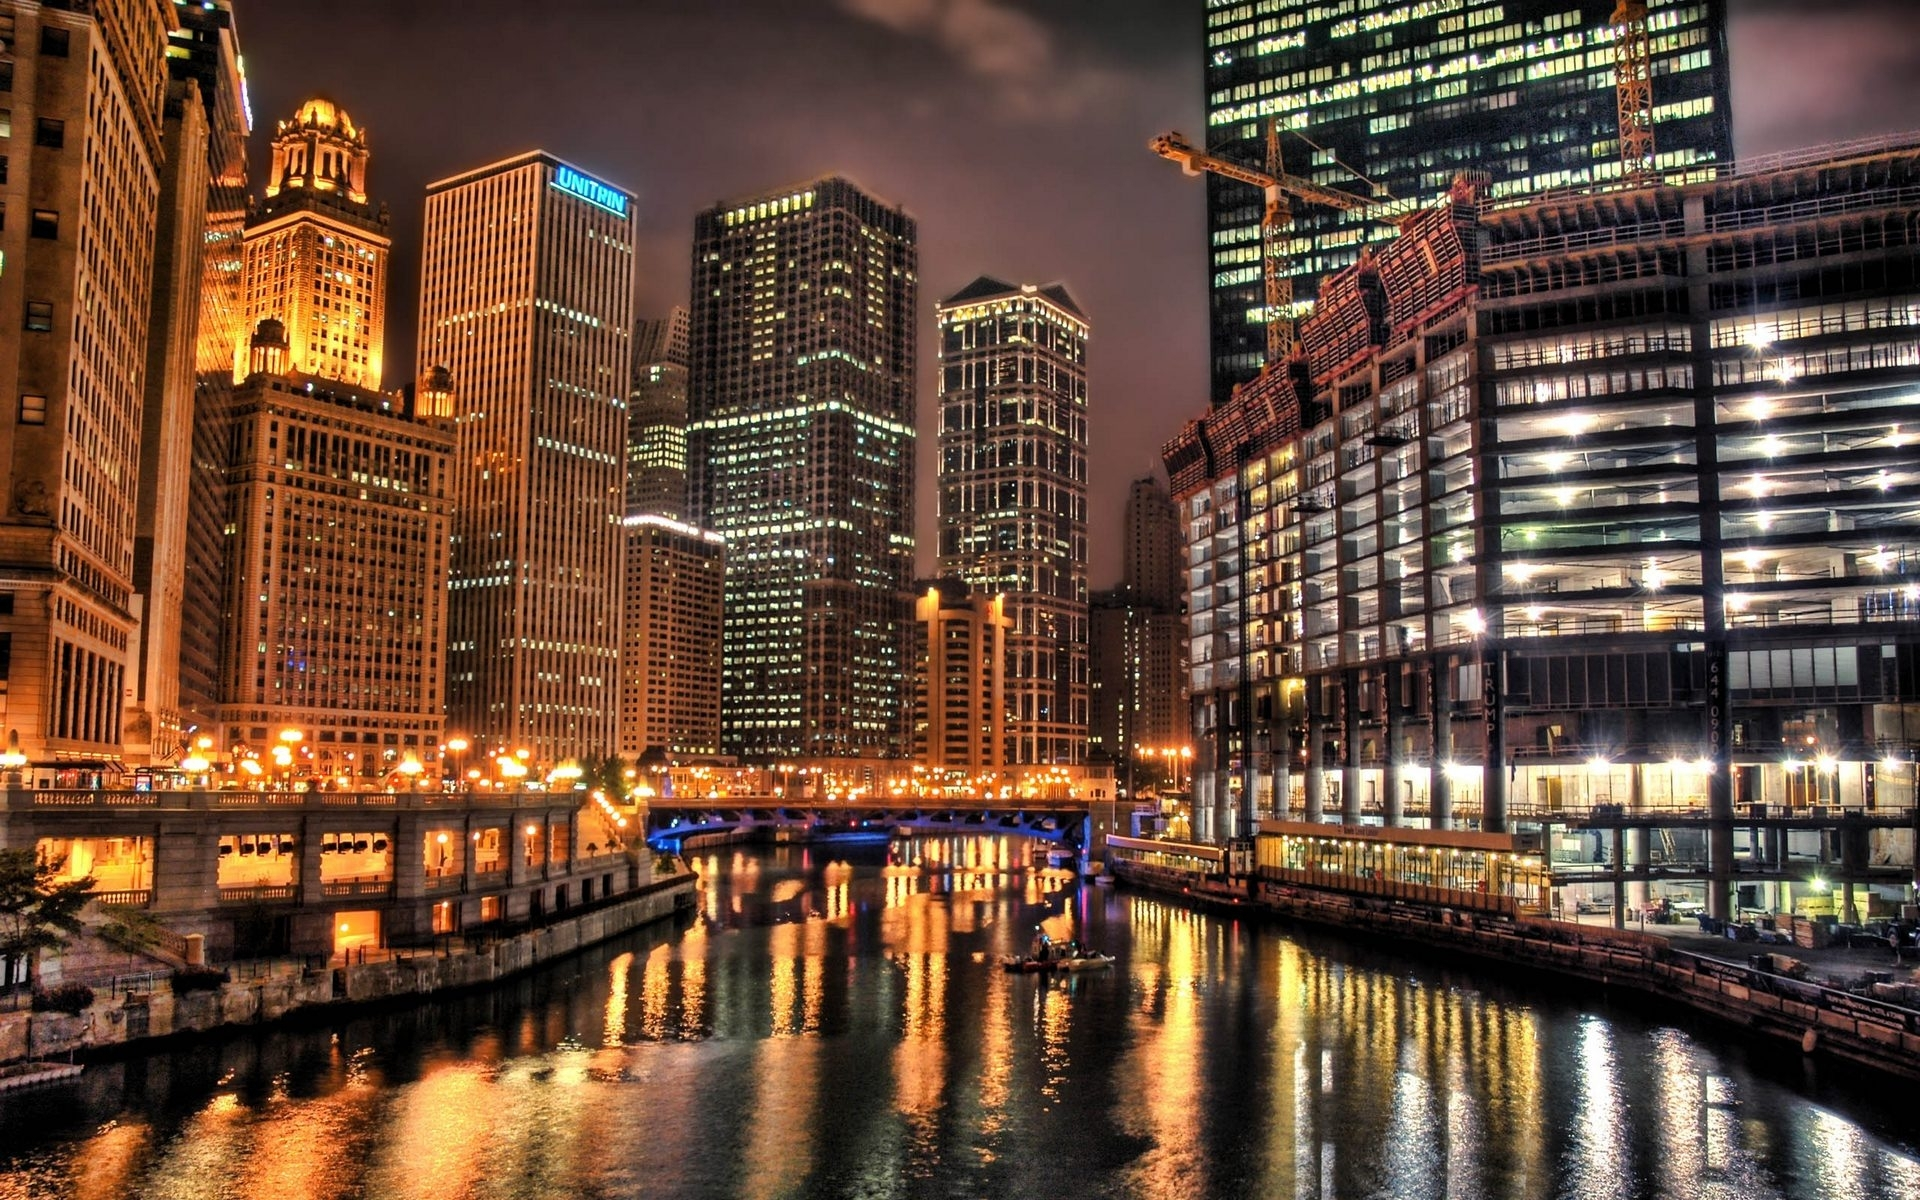 Wonderful Wallpaper Night Chicago - Chicago-at-night-HD-wallpaper  Graphic.jpg